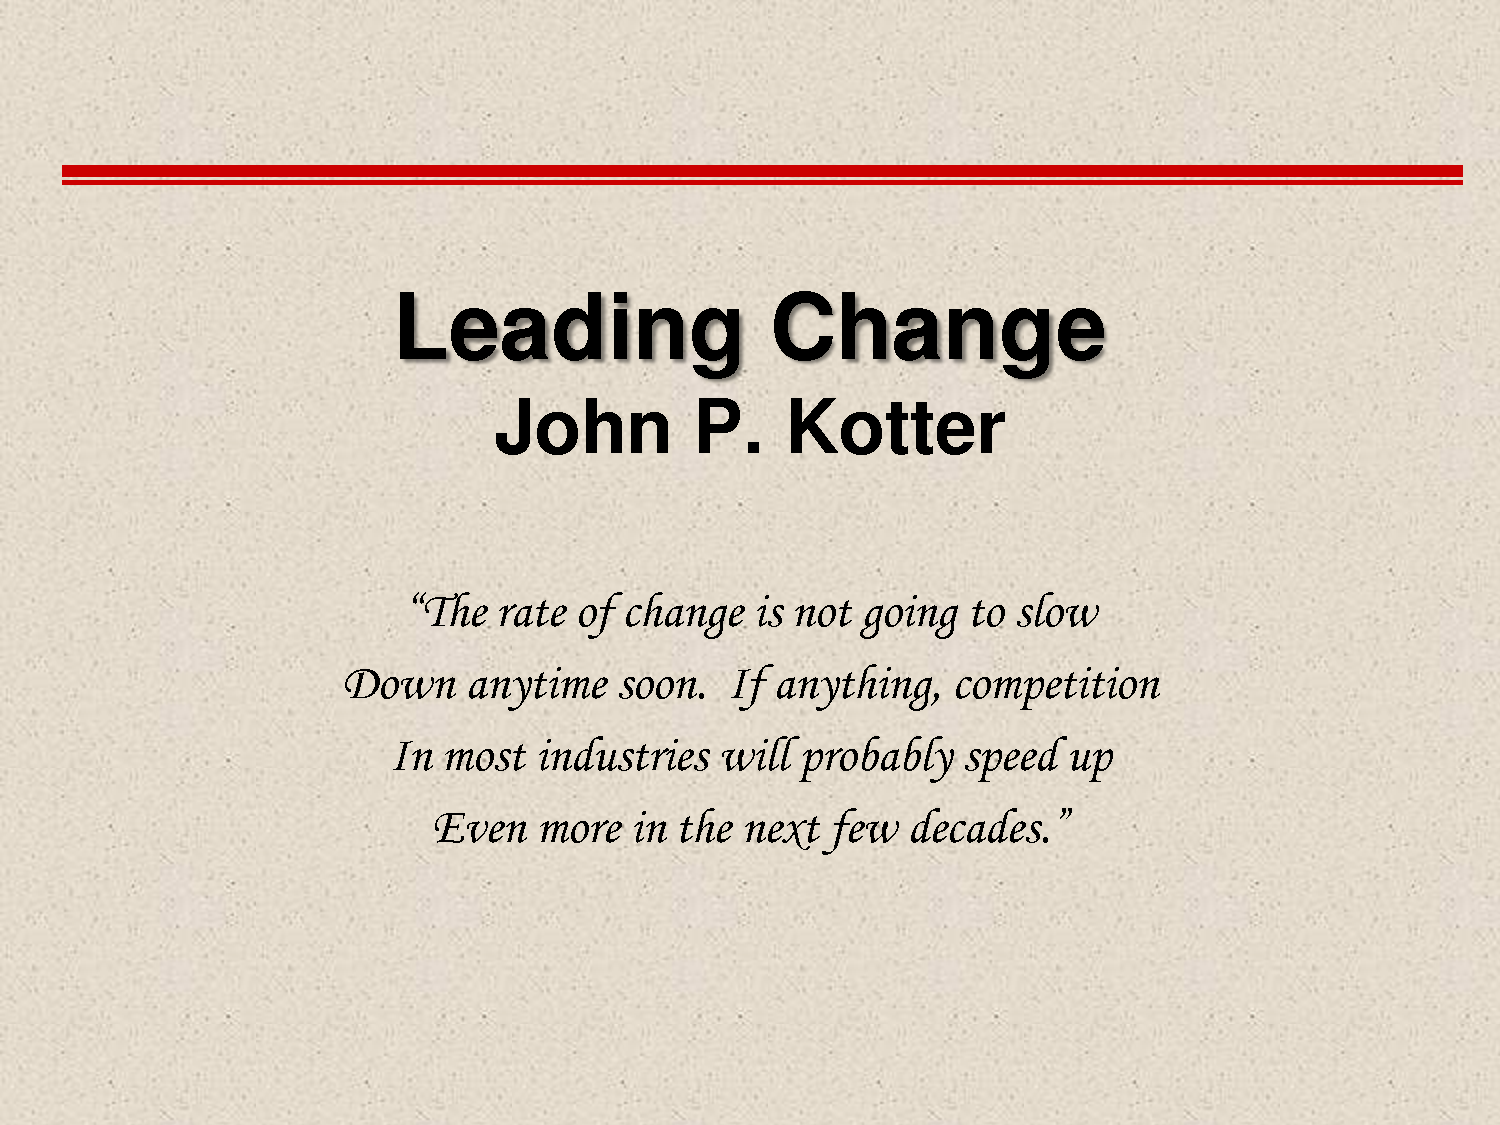 kotter s 8 step change model why change management initiatives john kotter change management model